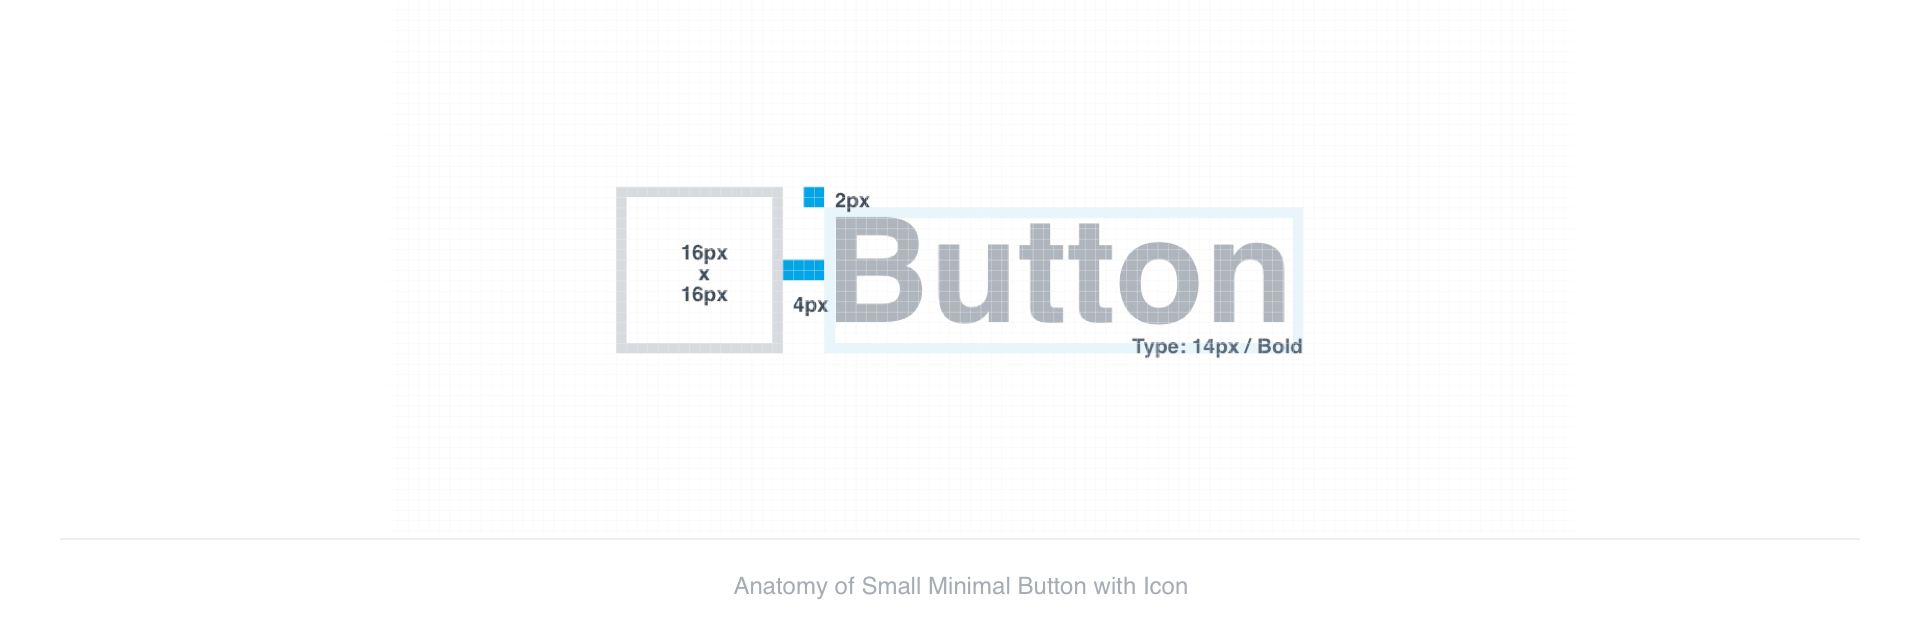 Anatomy of Small Minimal Button